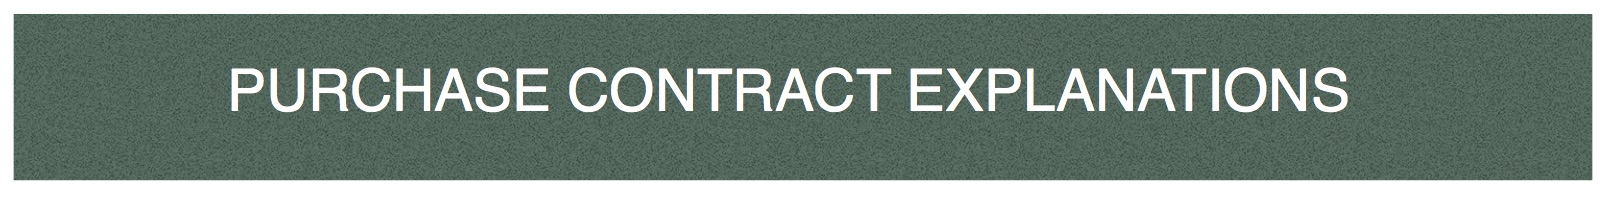 Purchase Contract Explanations Bar.jpg